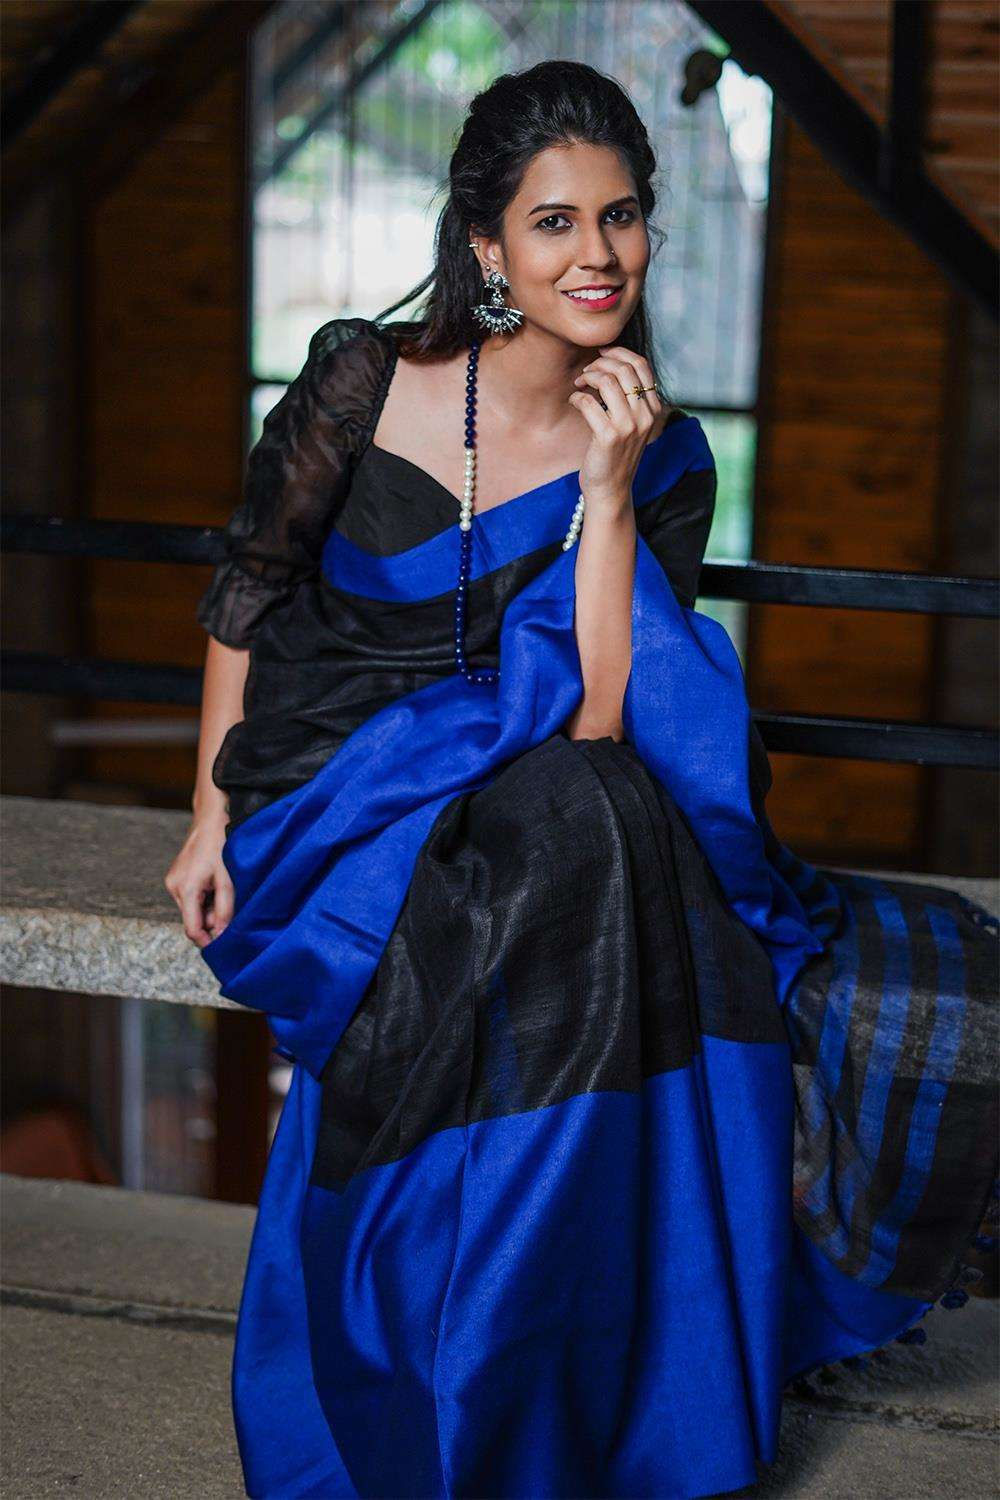 Black handloom linen saree with royal blue border - House of Blouse